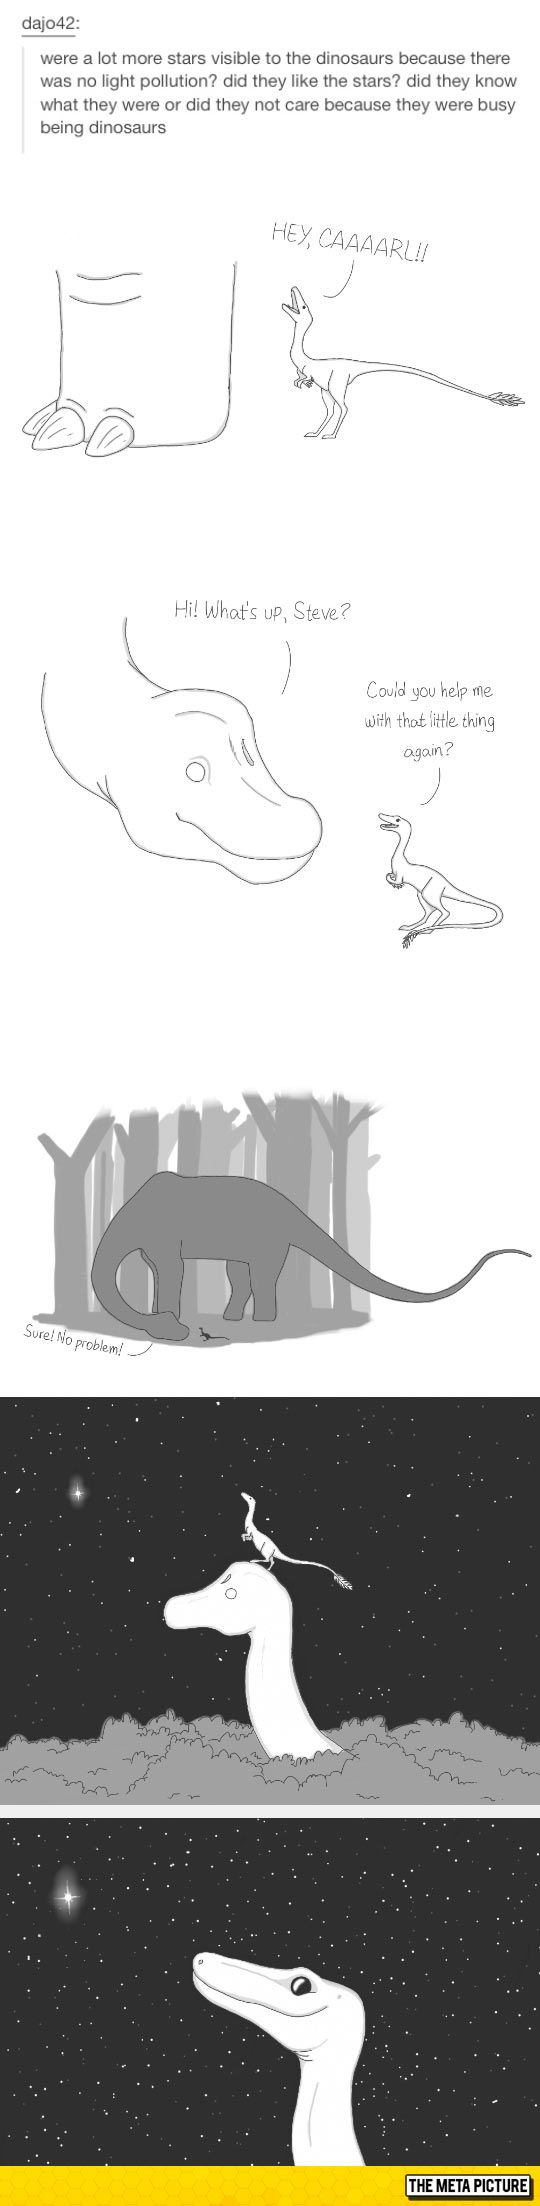 Dinosaurs And Stars> this bring me immense joy and a melted heart